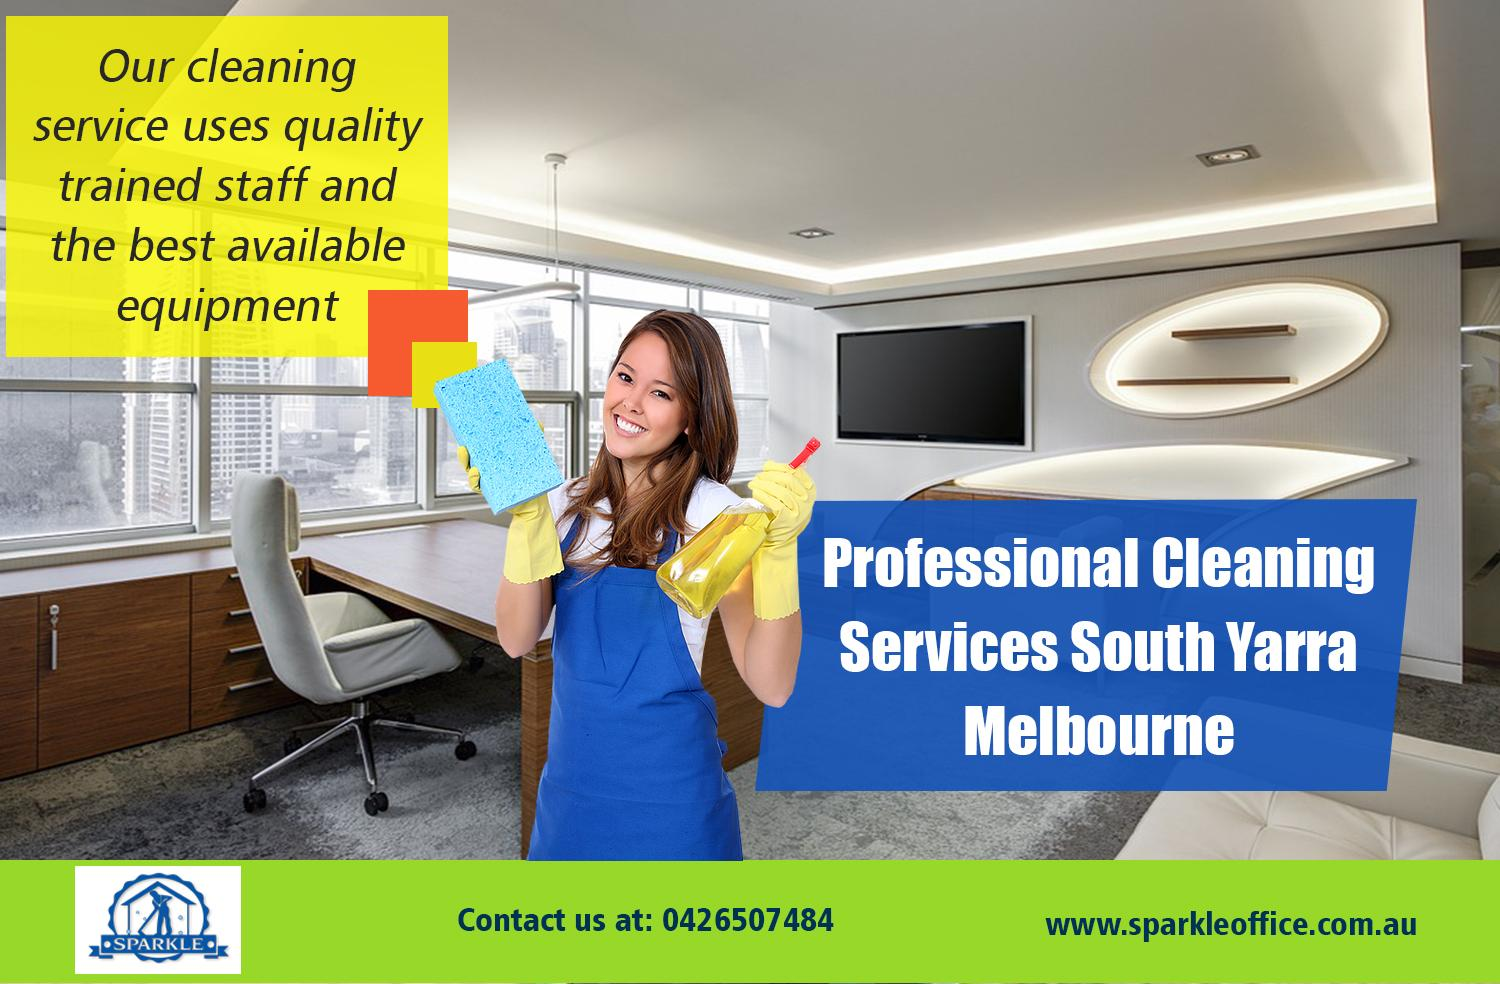 Professional Cleaning Services South Yarra Melbourne